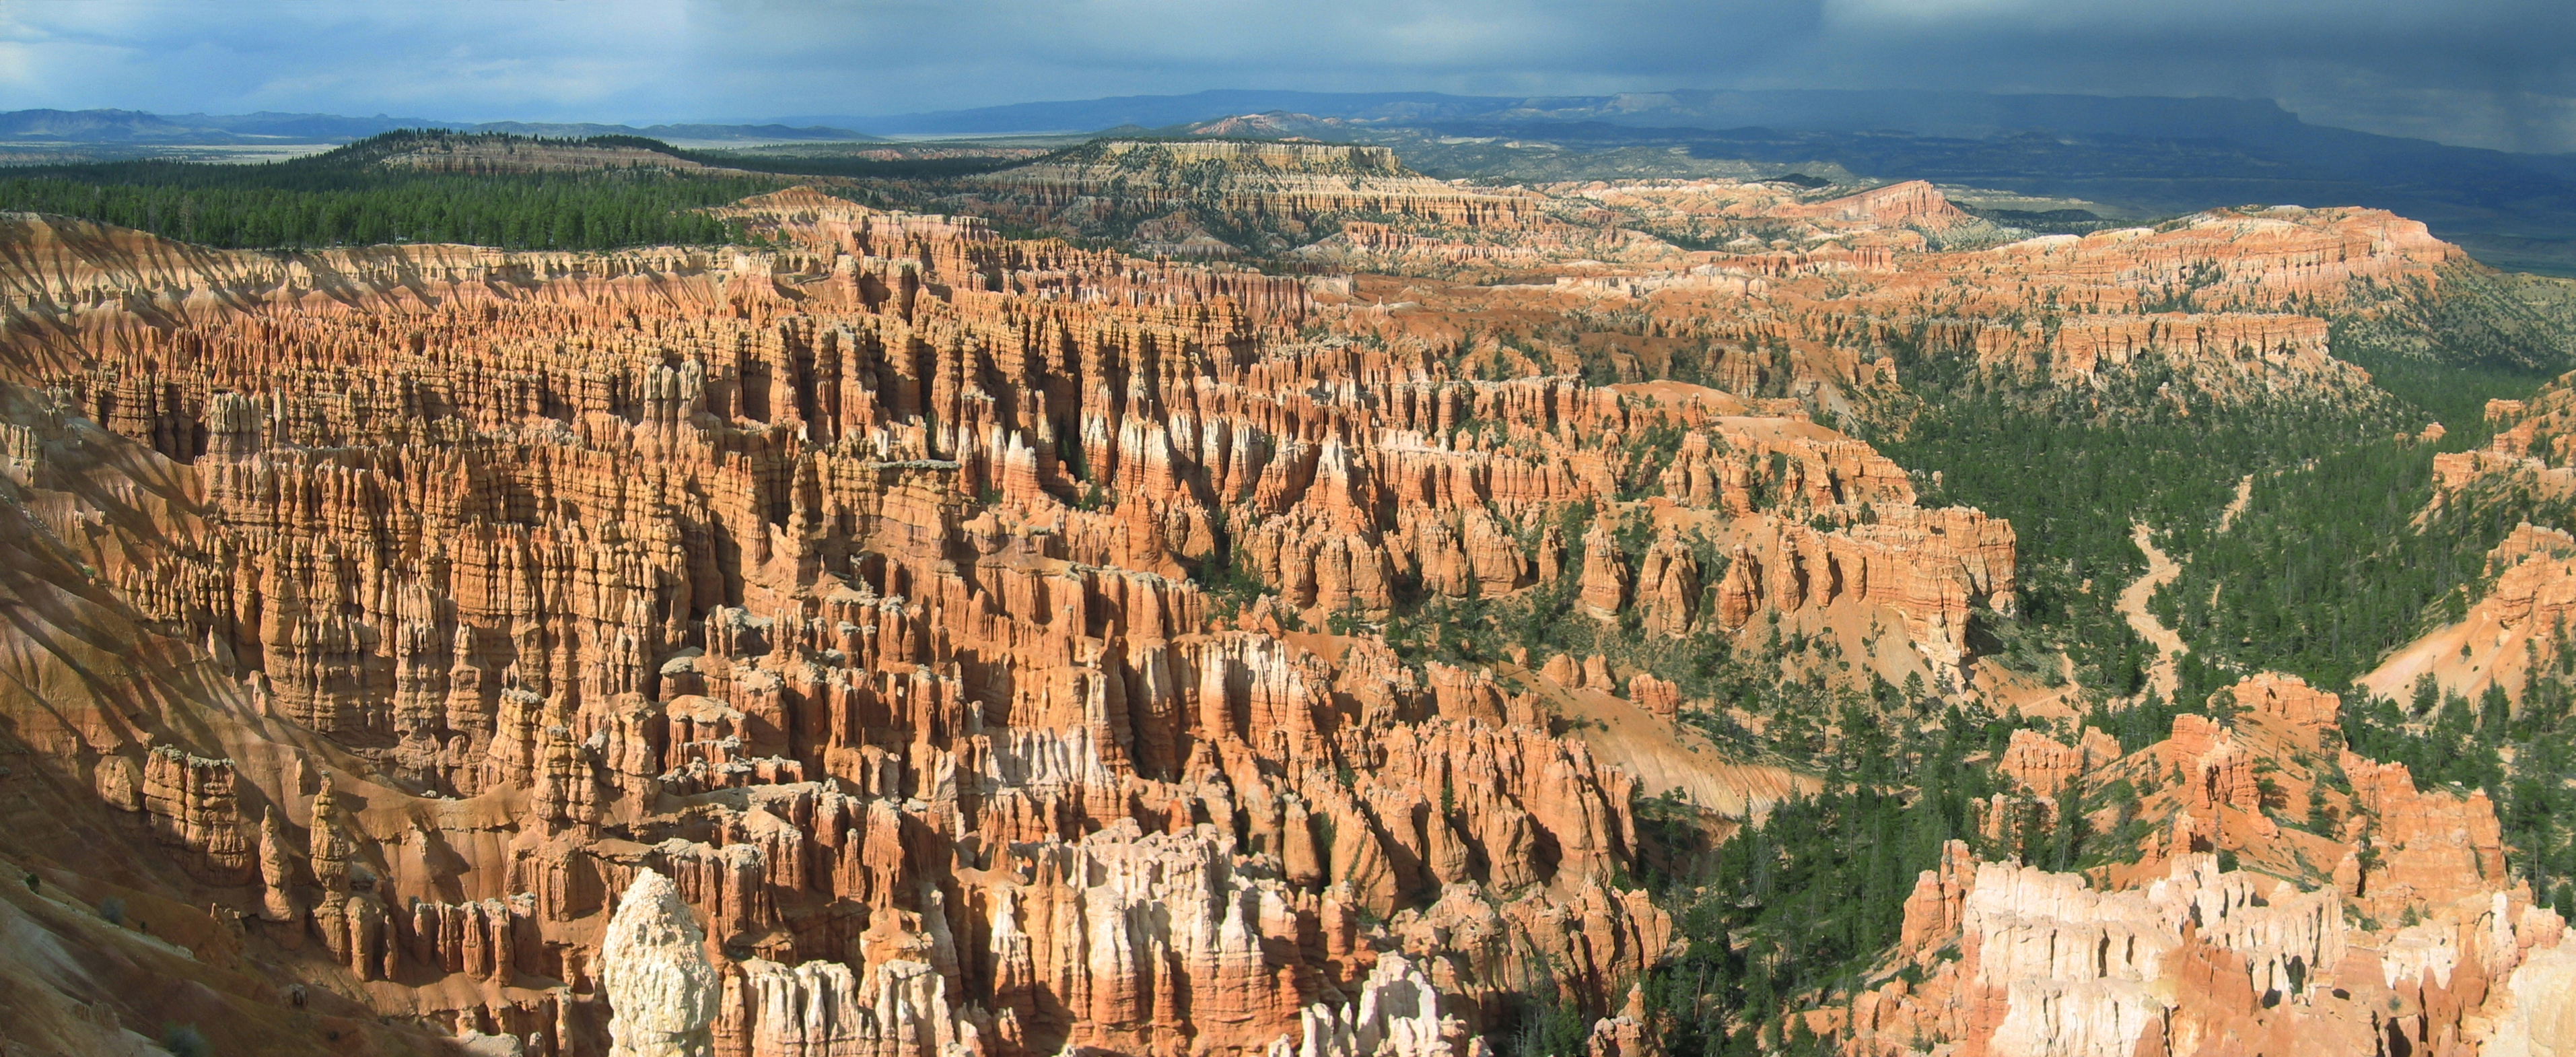 FileBryce Canyon Amphitheater Hoodoos Panoramajpg Wikipedia